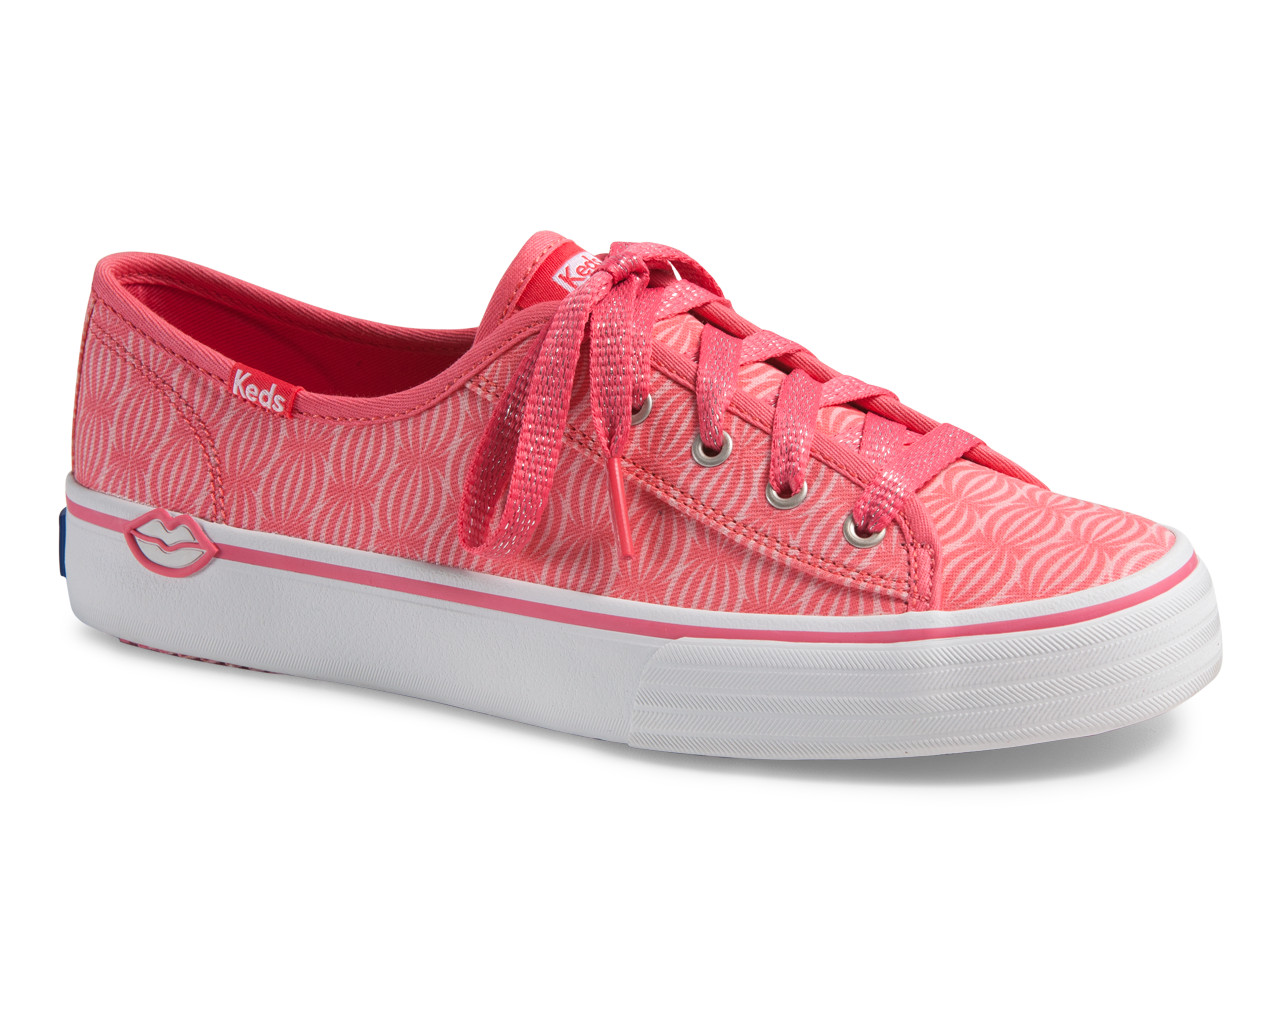 Keds Double Up EOS Sneakers in Pomegranate/Raspberry, $55, at shoecarnival.com